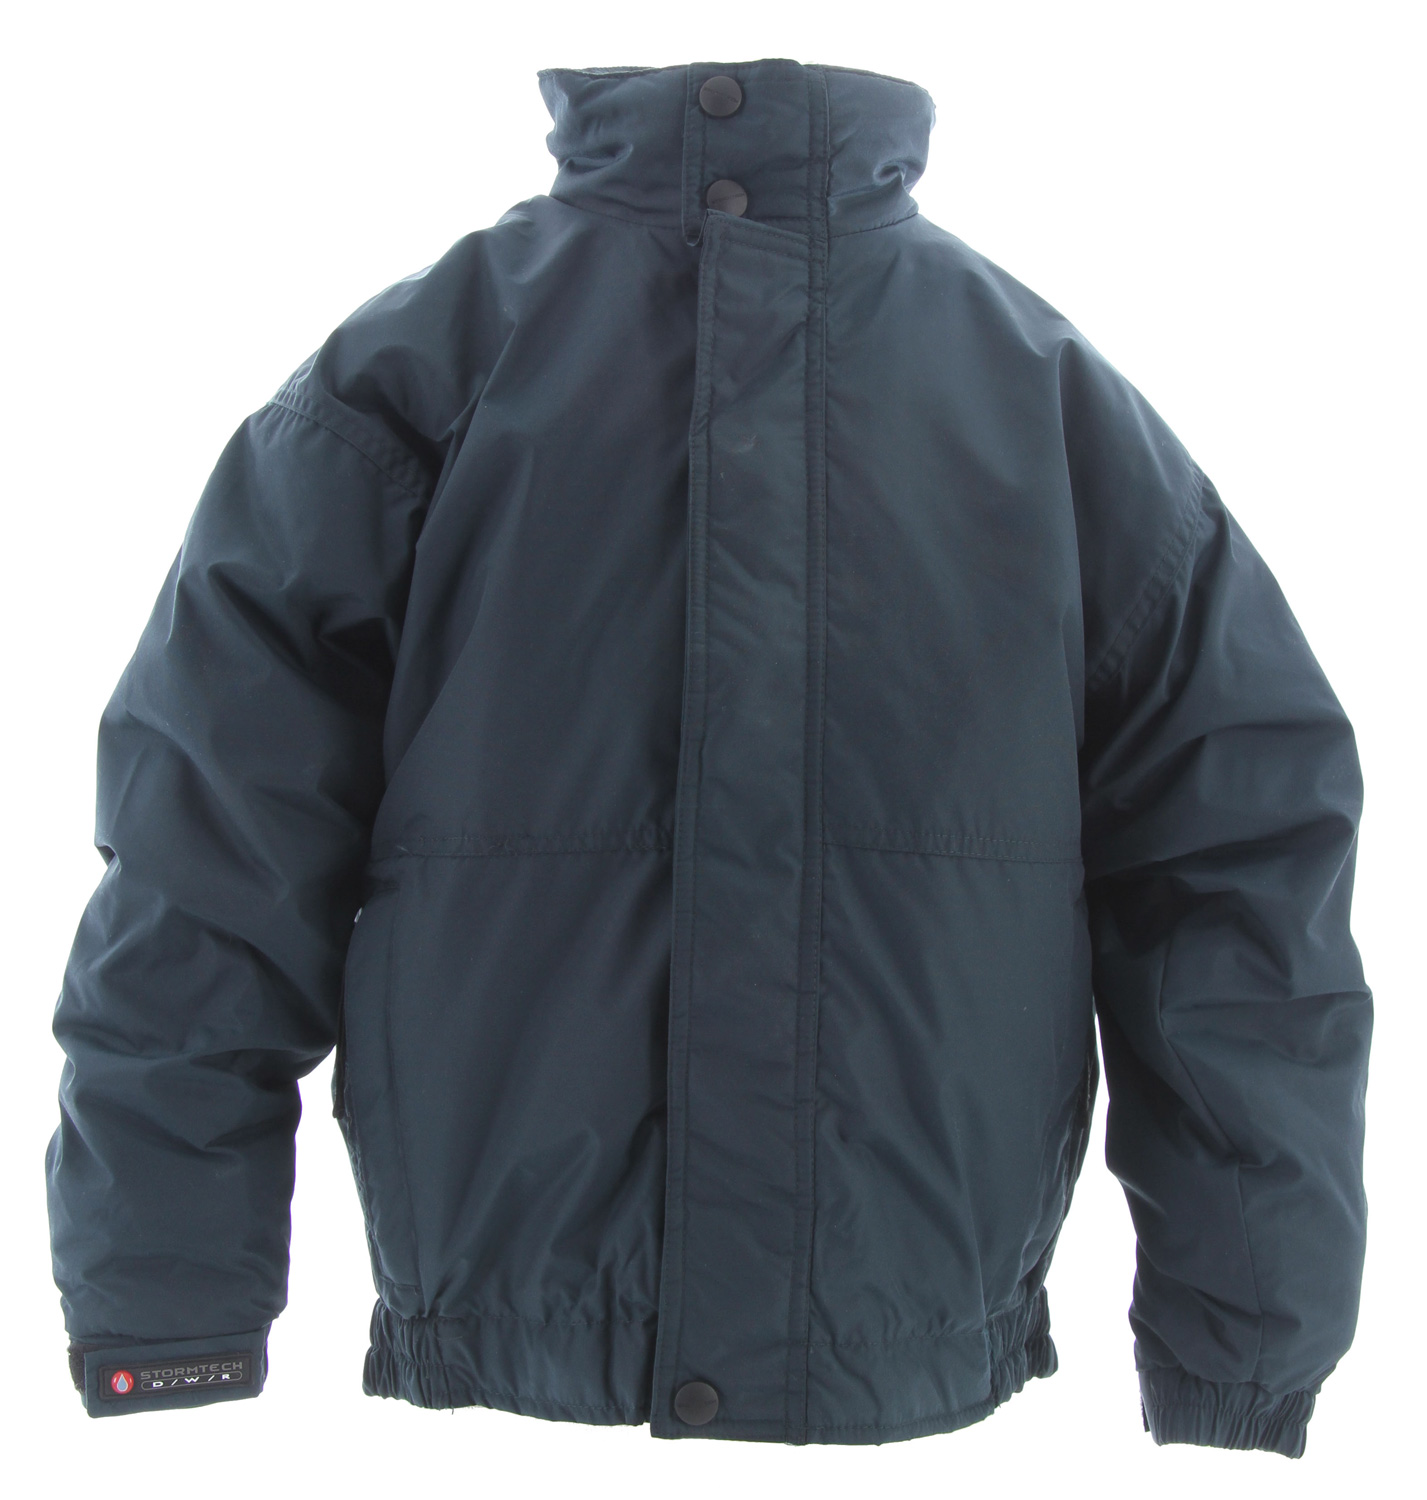 The Youth 3-in-1 jacket adapts to temperatures and conditions for three seasons of the year. The removable fleece liner has a ribbed hem and cuff, so it looks cool worn on its own and adds an extra measure of protection.Key Features of the Stormtech Explorer 3-in-1 Jacket: Durable STORMTECH DWR 100% Nylon Tactile Wind and Water Resistant Outer Shell 100% Anti-Pill Polyester Polar Fleece Zip-In/ Zip-Out lining Full-Length External Draft Flap Stand-Up Storm Collar on lining and Shell Relaxed-Fit Waistband Adjustable Cuffs with Velcro Closure Front Zippered Security Pockets - $32.95